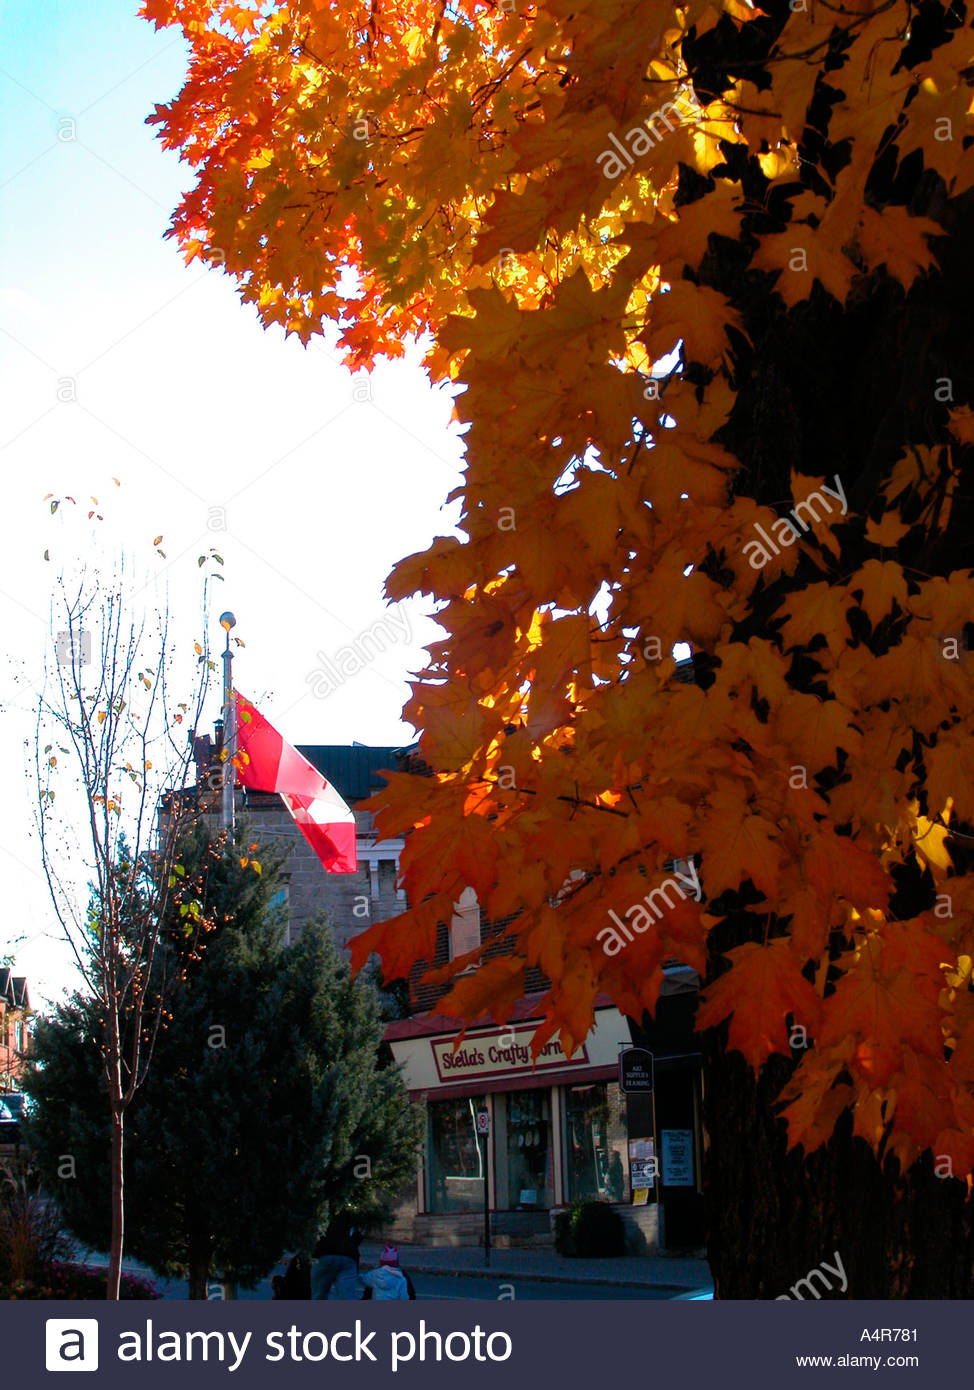 Canadian Flag With Maple Tree In Fall Foliage Colours Stock Photo Alamy